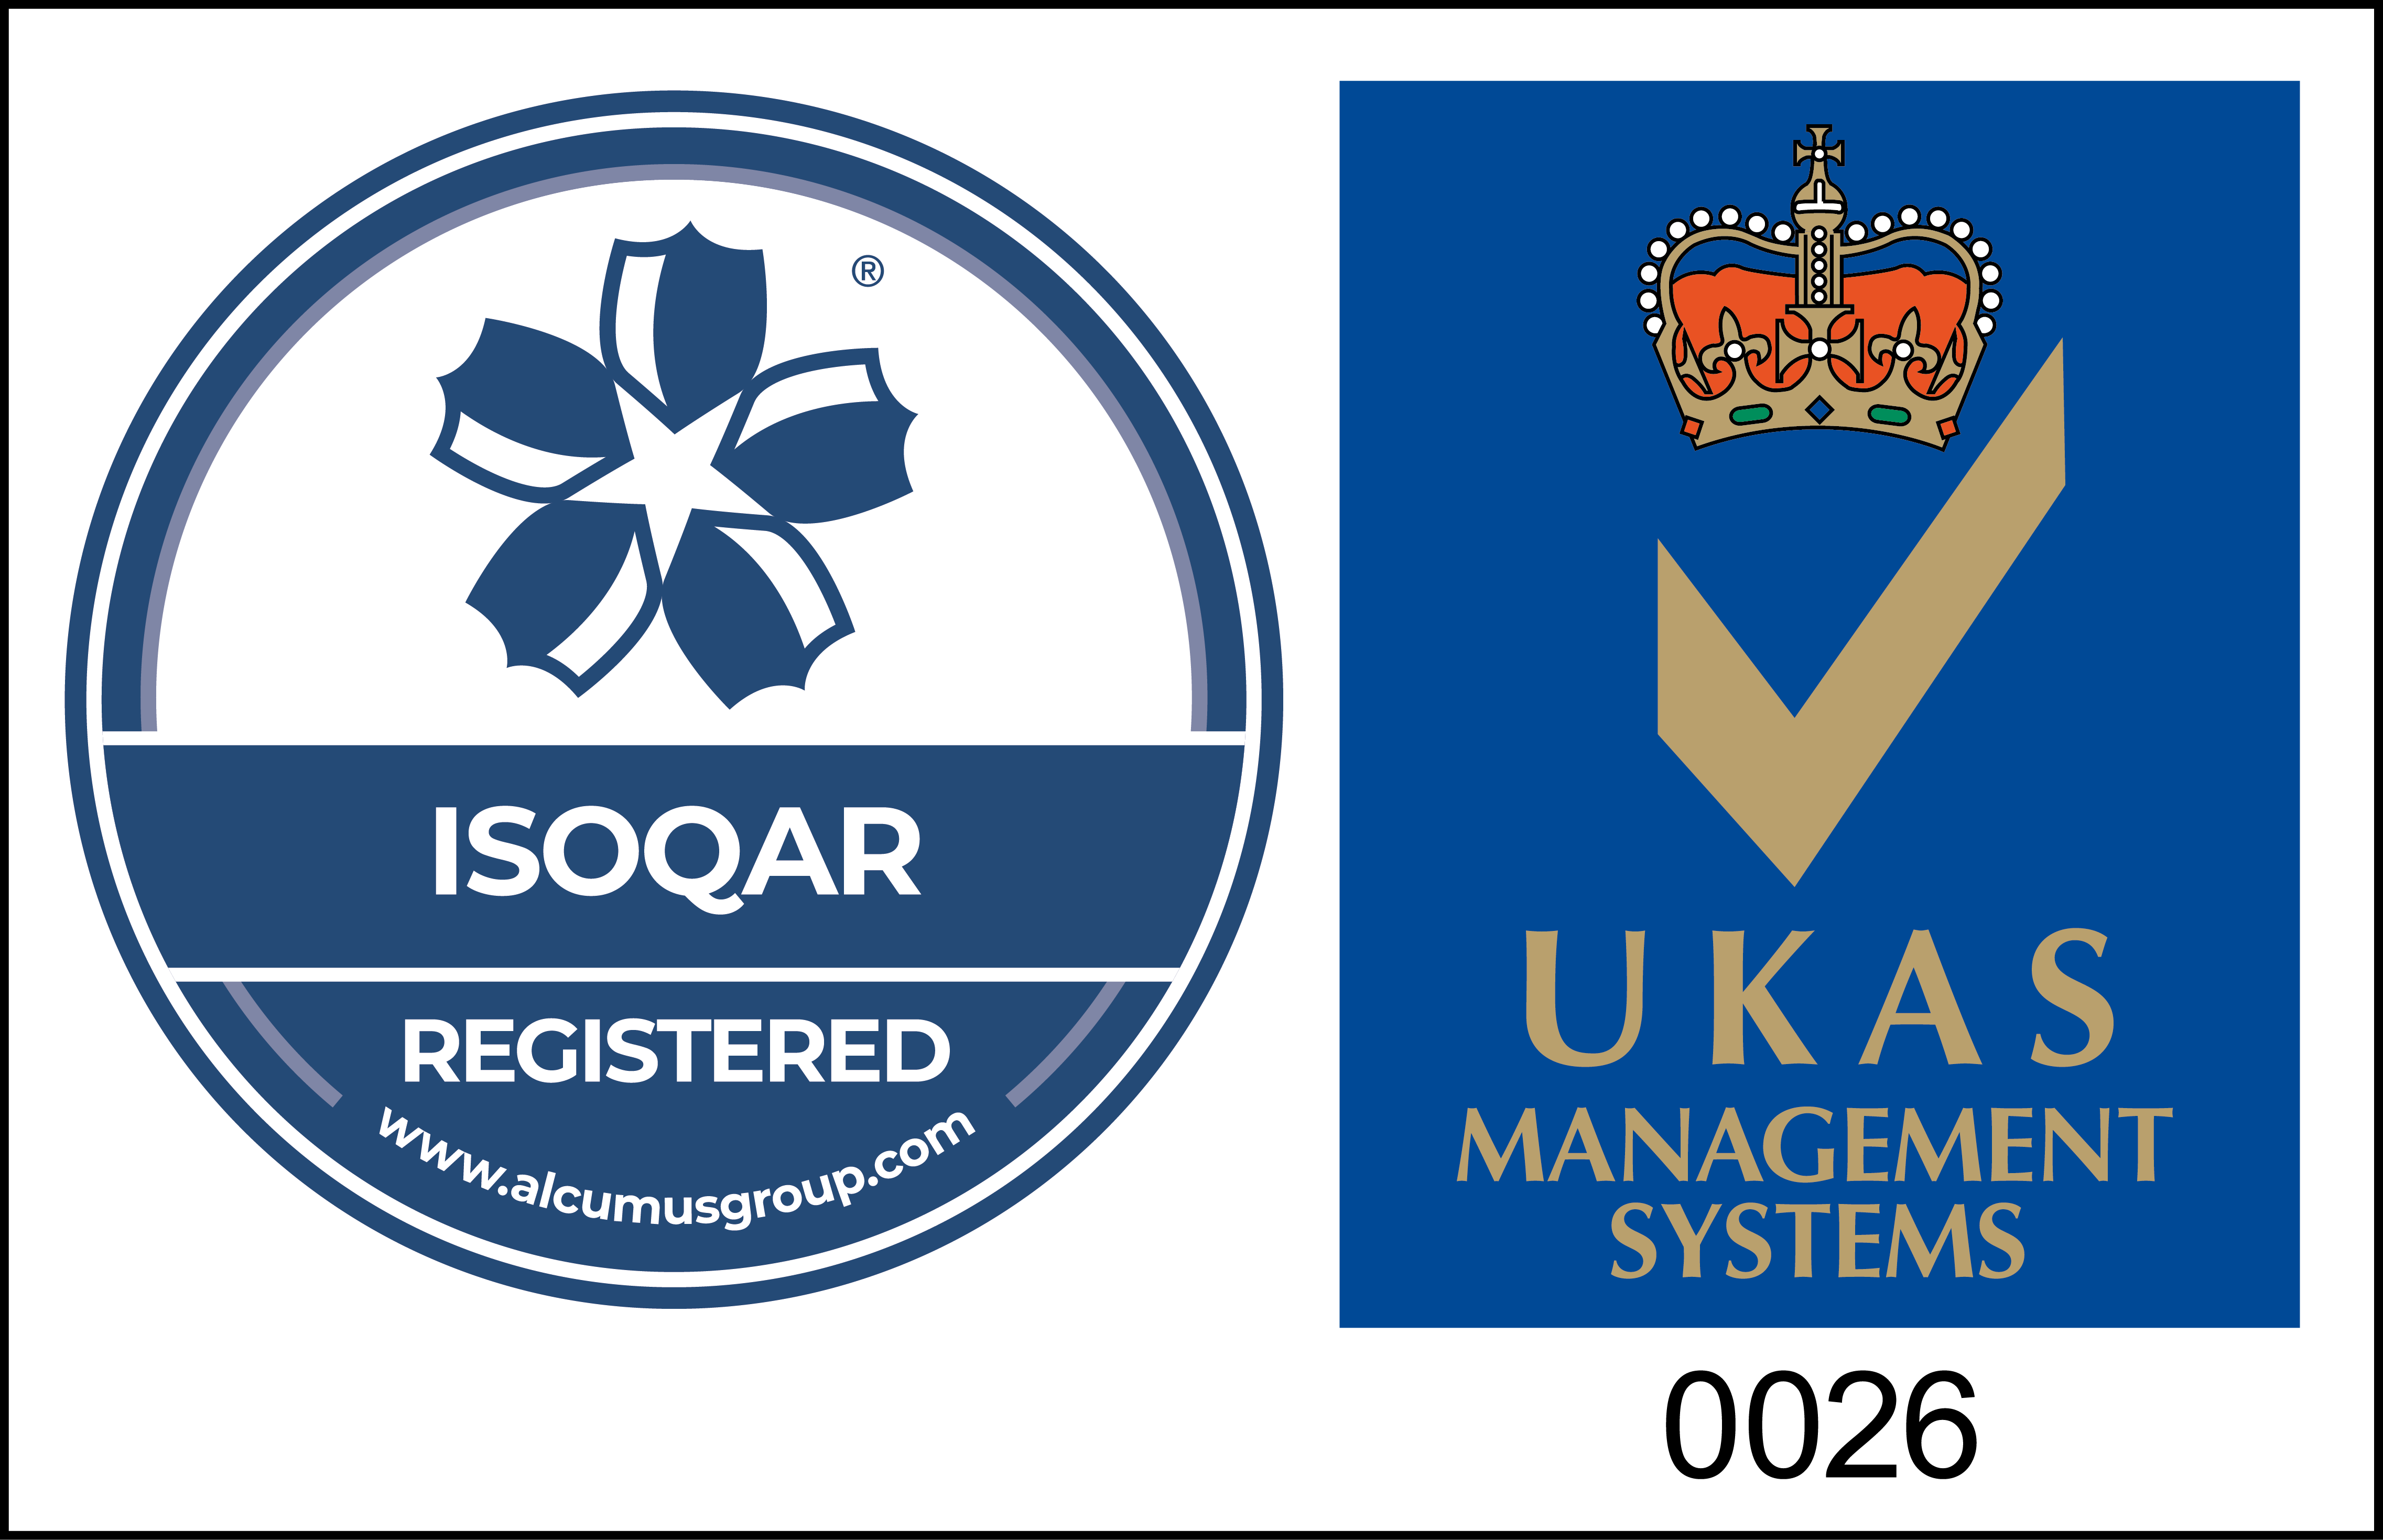 Why choose UKAS Certification?